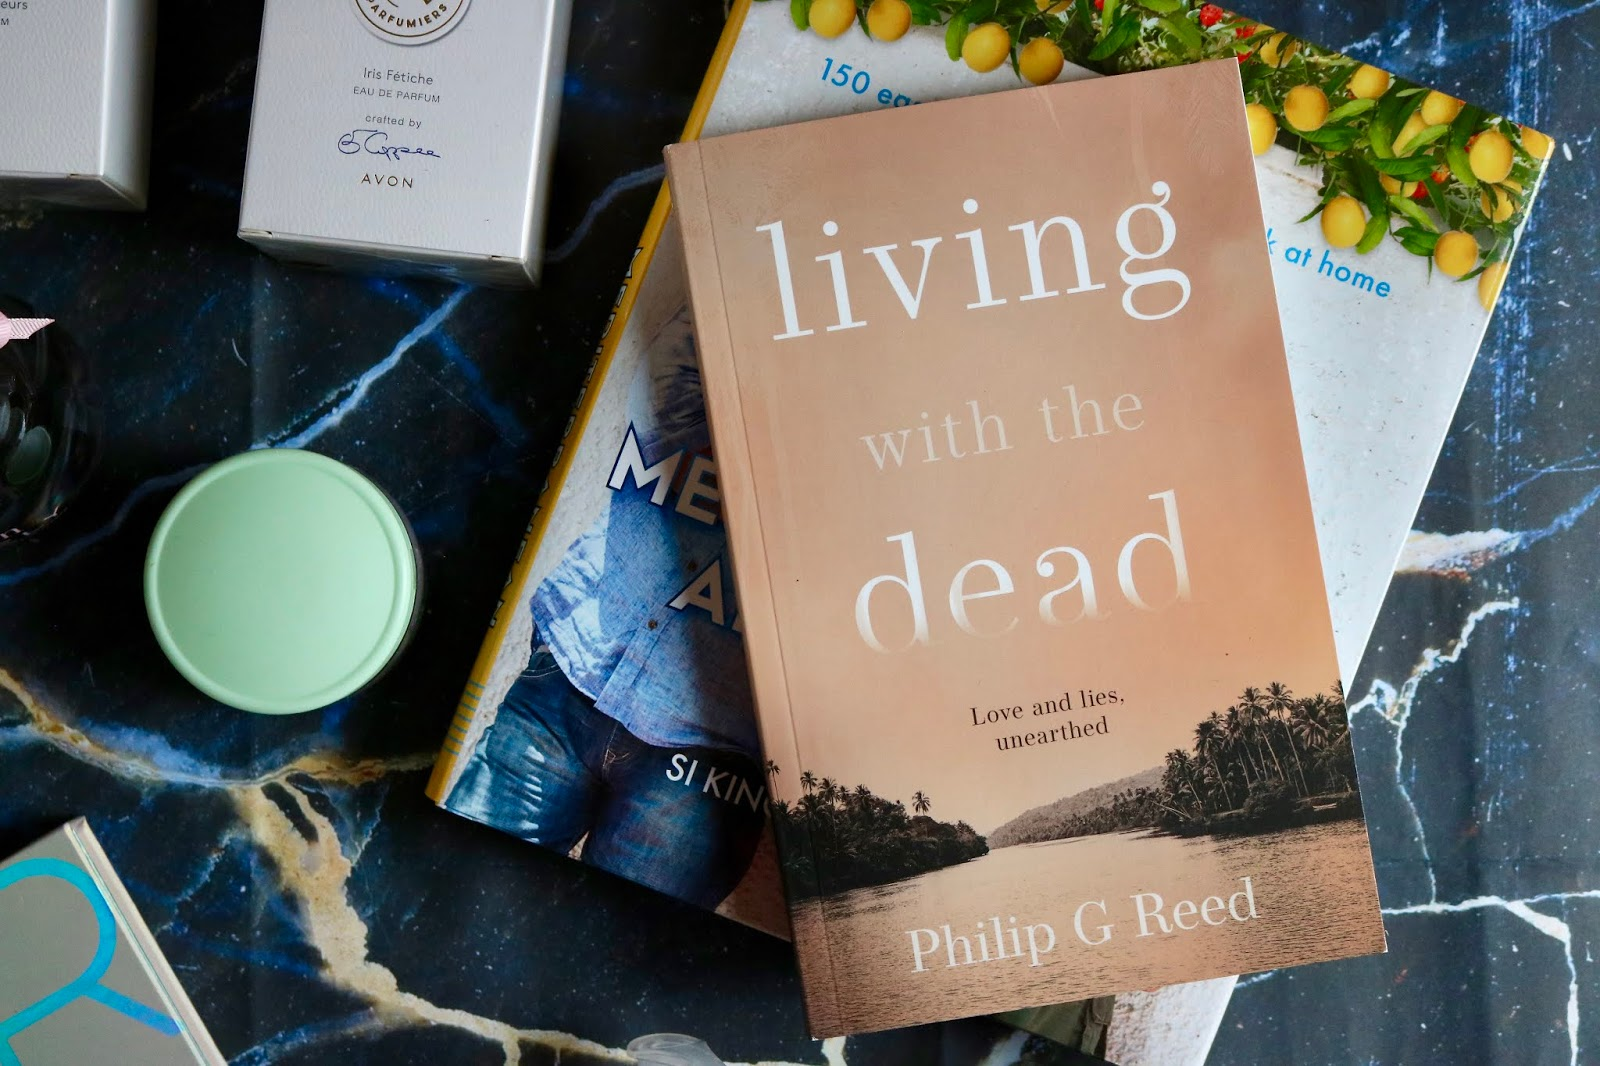 LIVING WITH THE DEAD BY PHILIP G REED